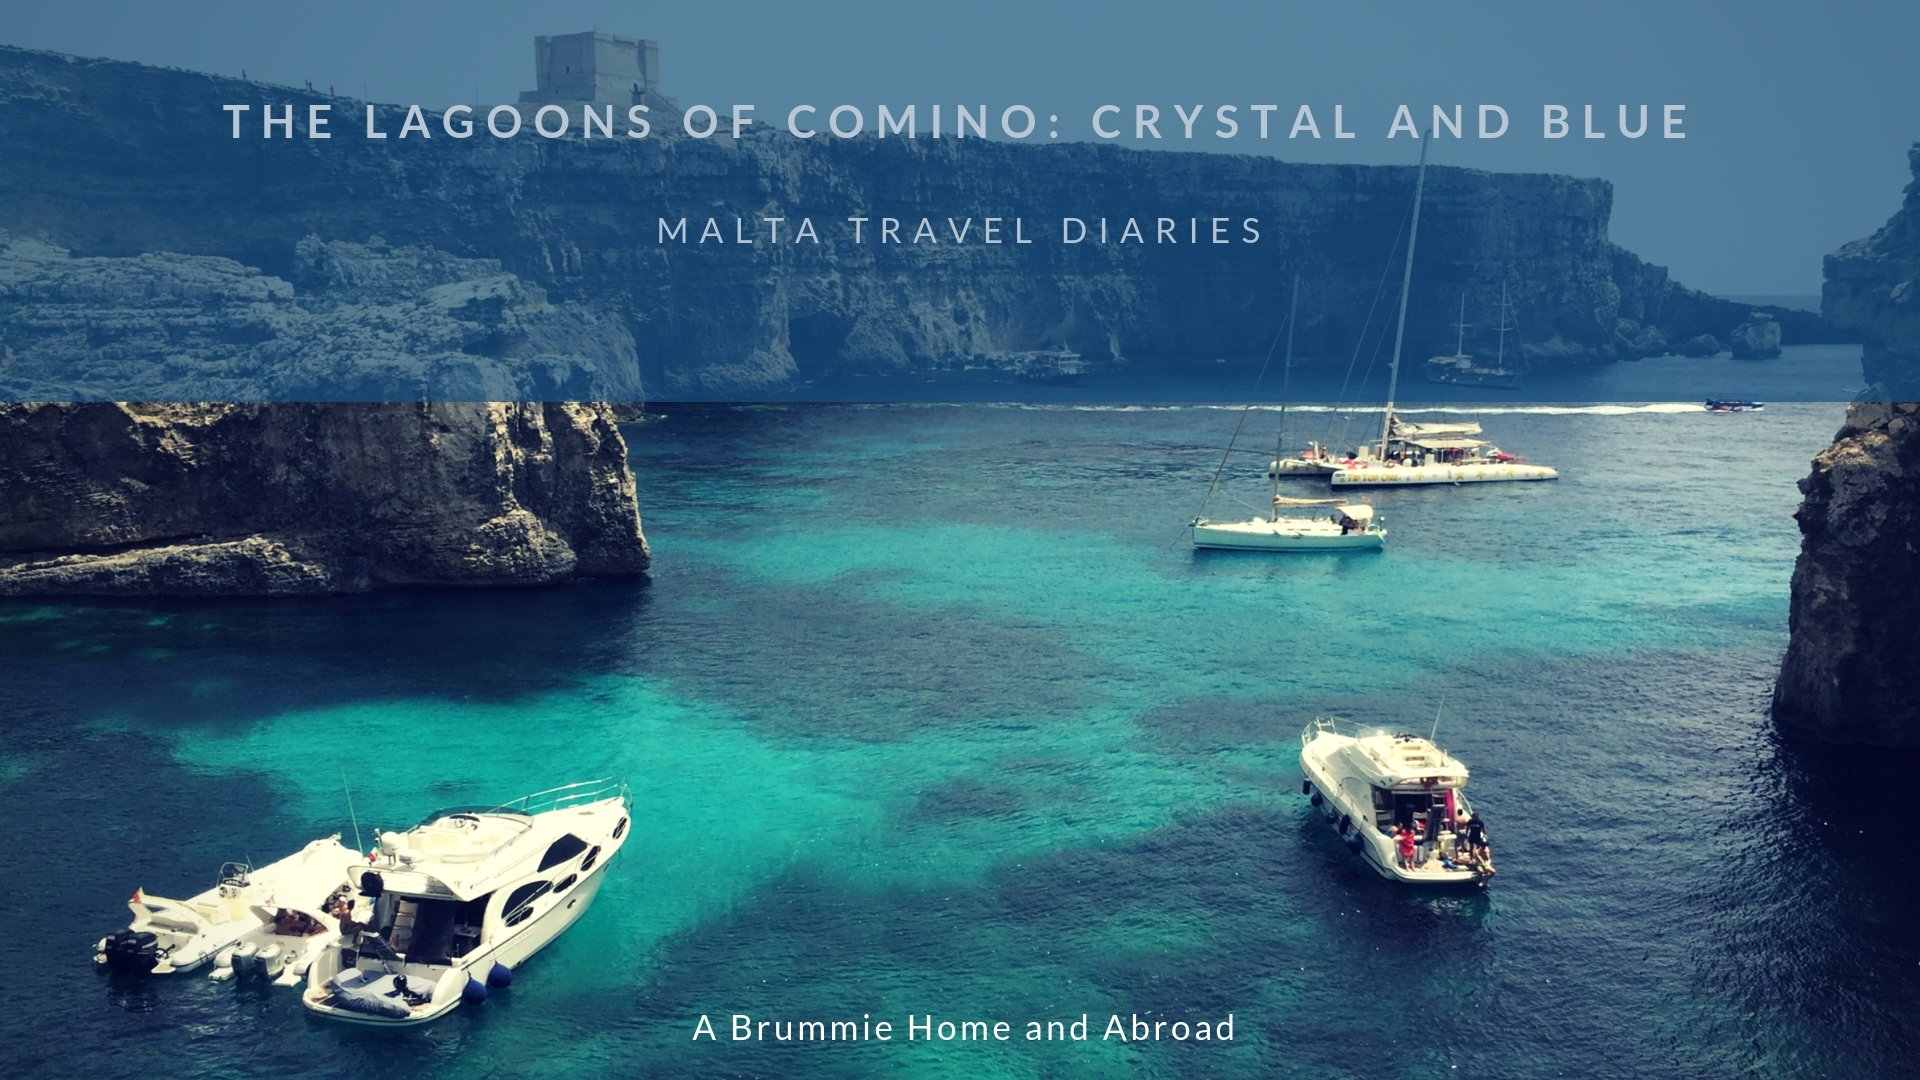 Malta Travel Diaries - Visiting the Blue Lagoon and Crystal Lagoon): On our final day in Malta we took a boat trip to the beautiful lagoons of Comino, a sparsely populated island between Malta and Gozo. Read on to find out why the Blue Lagoon is not entirely like its depicted in those Instagram pictures...